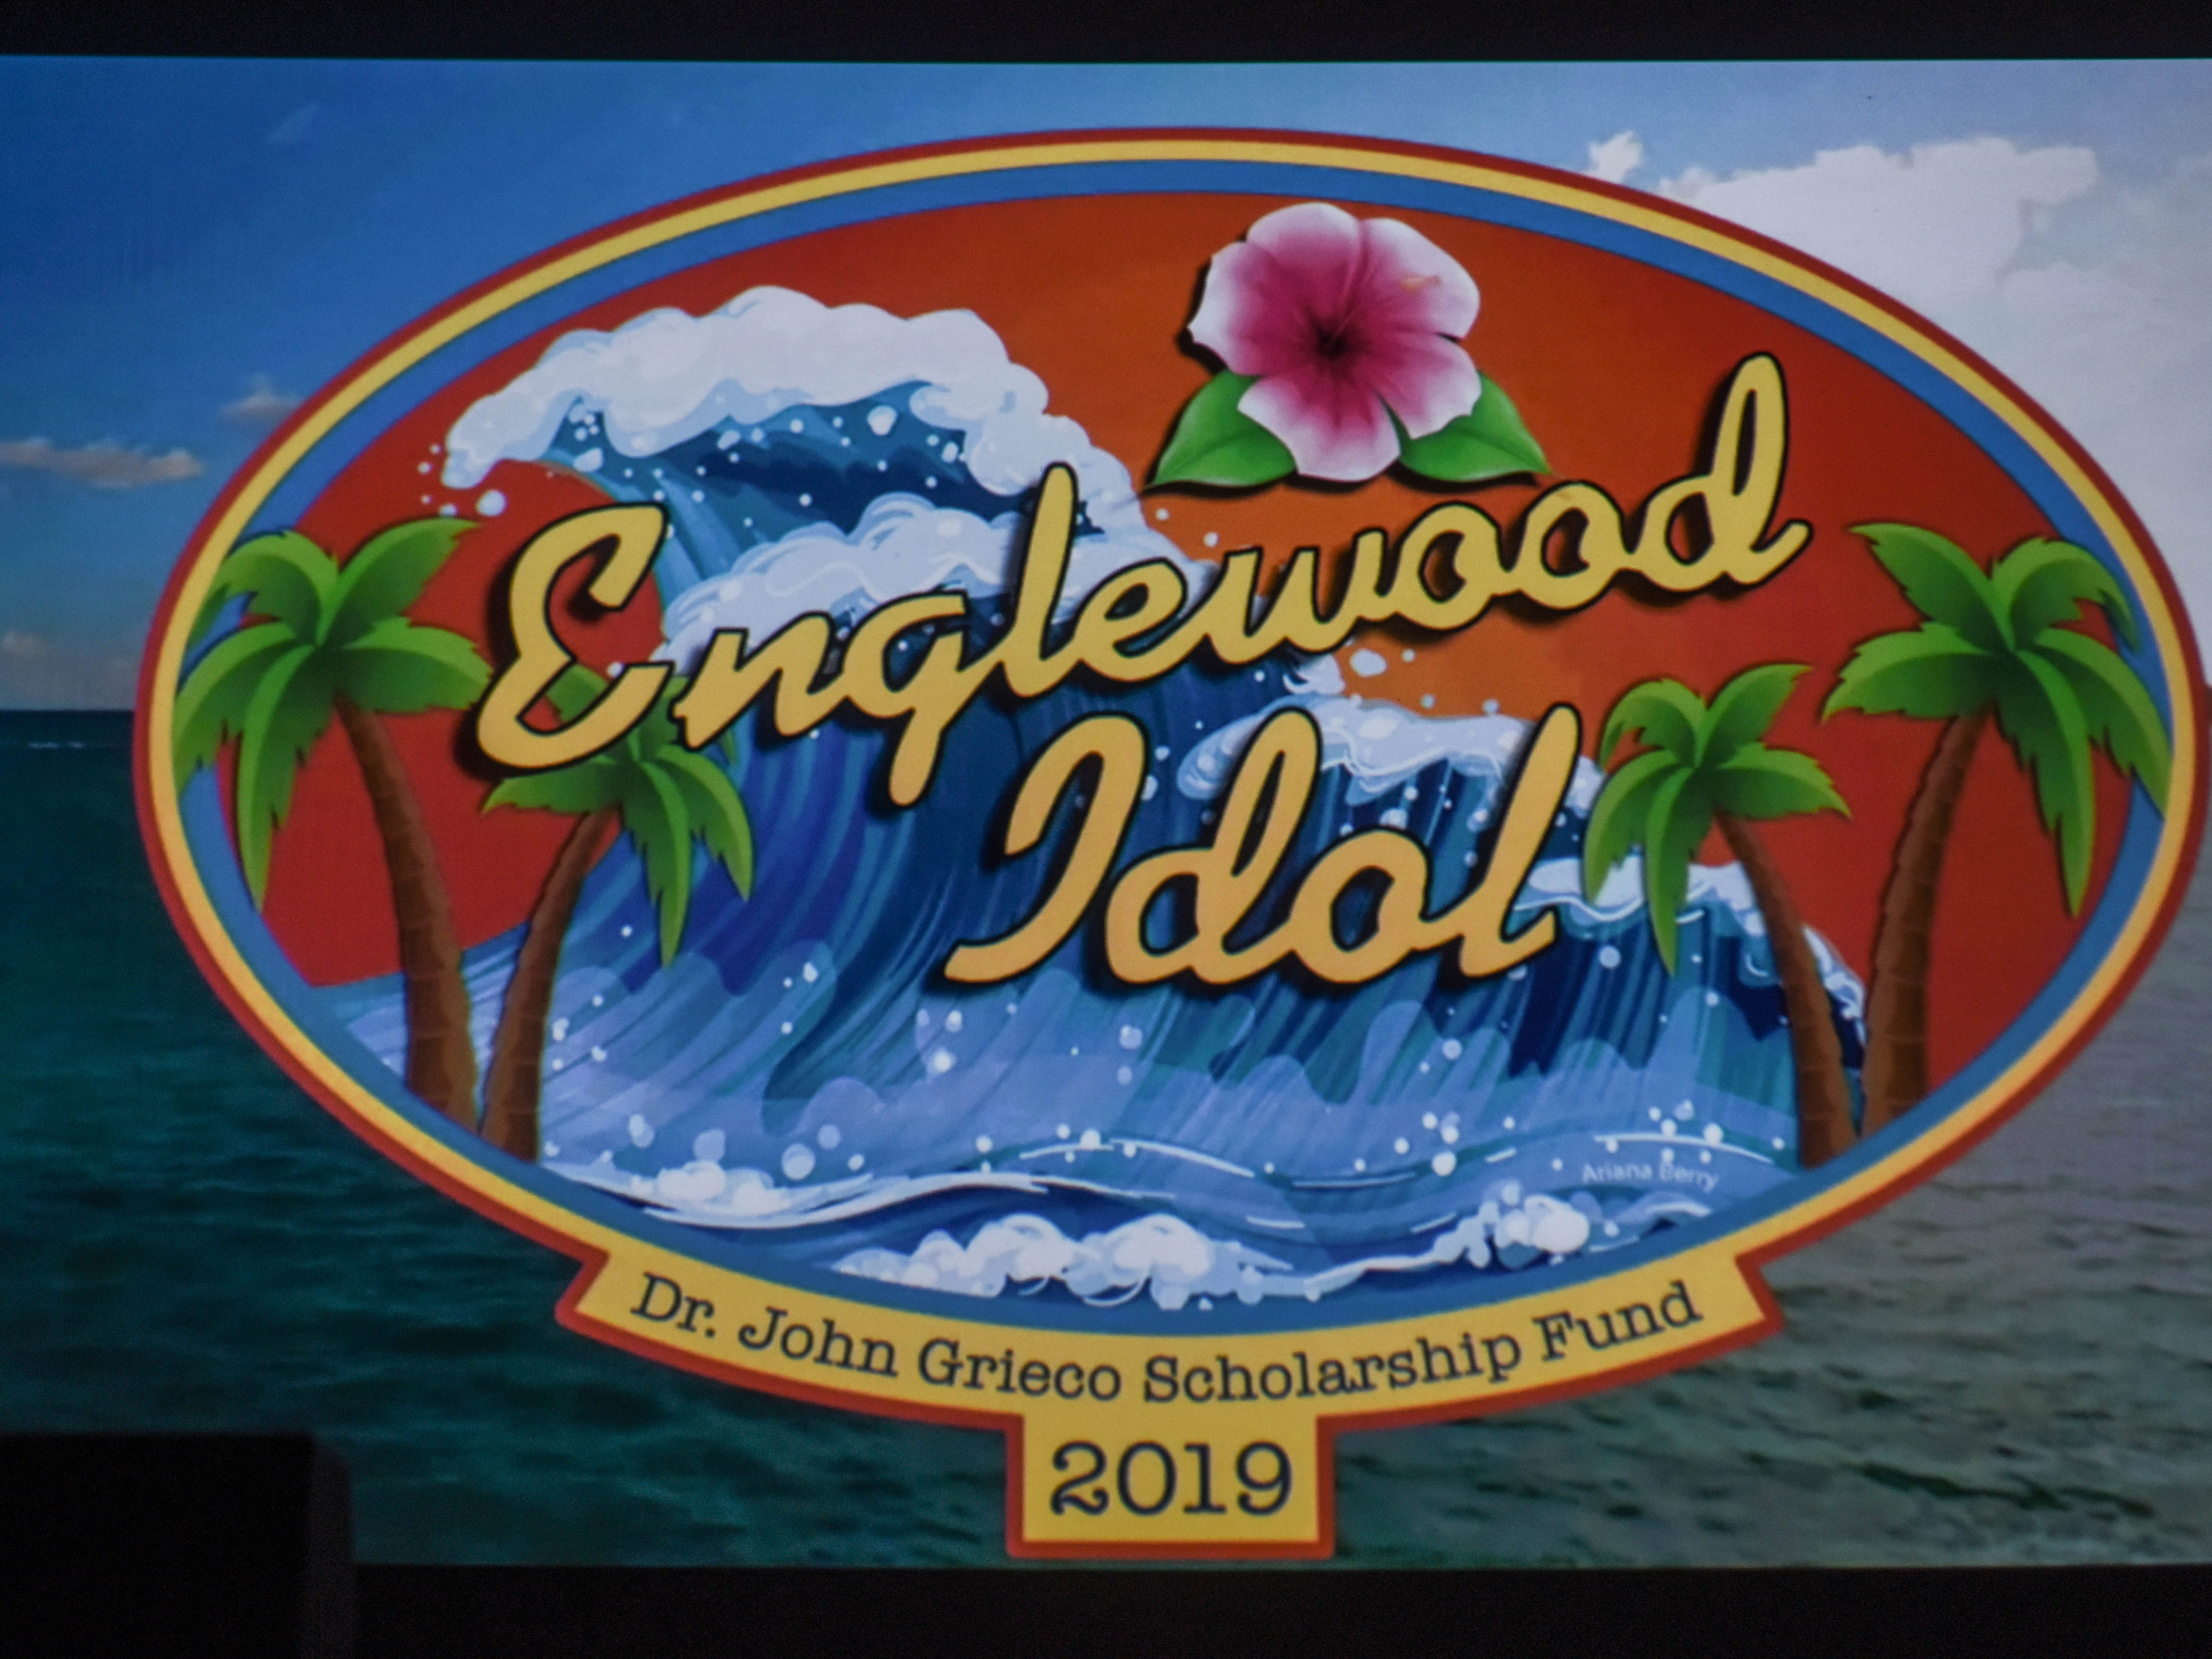 The 2019 Englewood Idol was held at bergenPAC theater. The singing competition is open to any high school student who currently lives or goes to school in Englewood, NJ. This years winner was Genesis Capellan. 01/11/2019